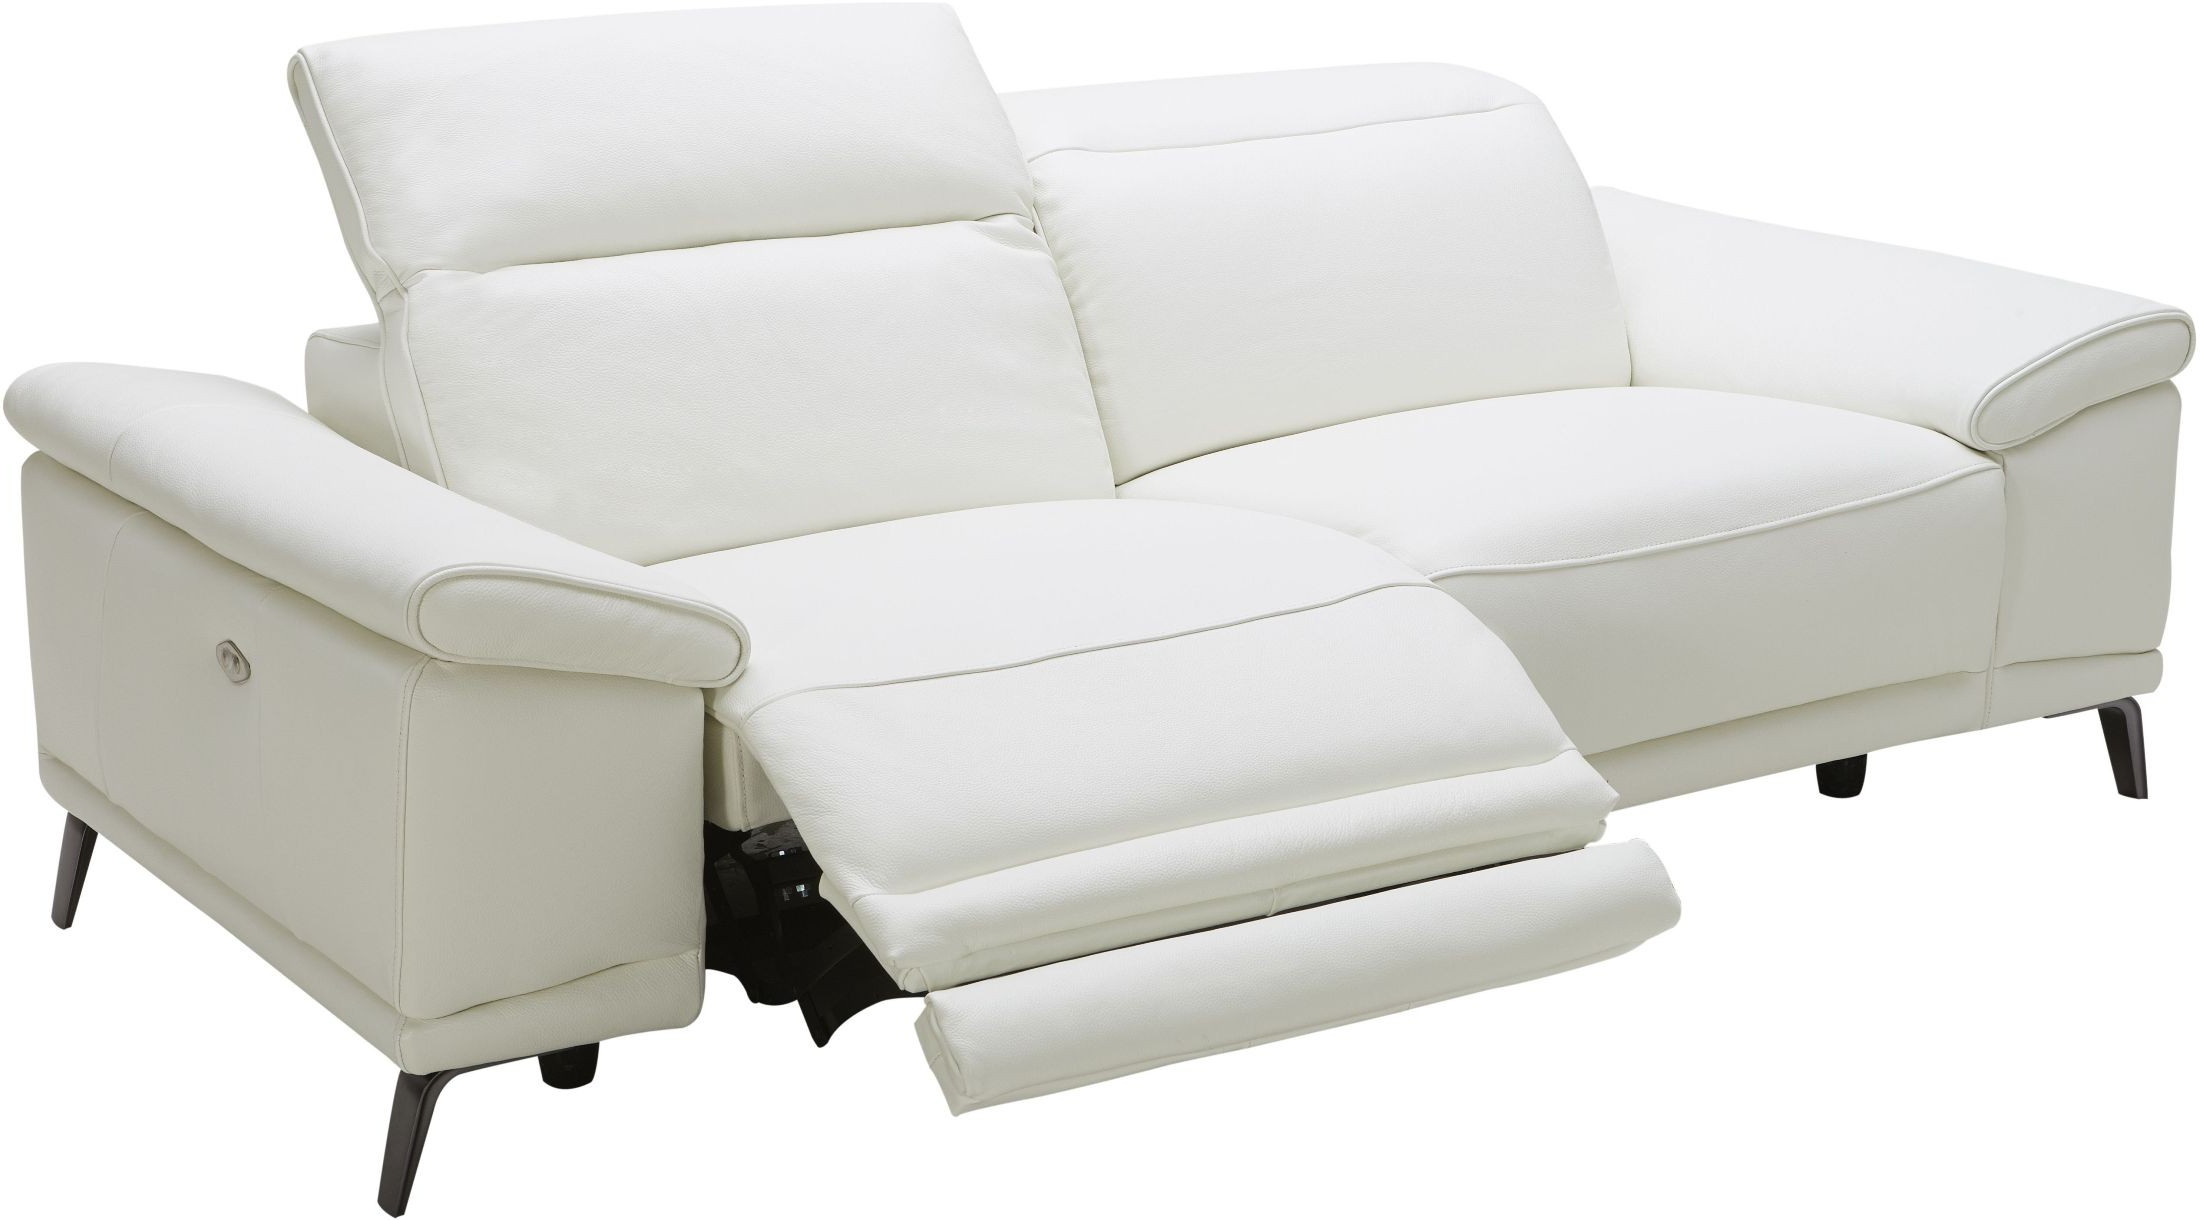 Power Reclining Sofas In Preferred Gaia White Leather Power Reclining Sofa, 18253 S, J&M (View 10 of 15)